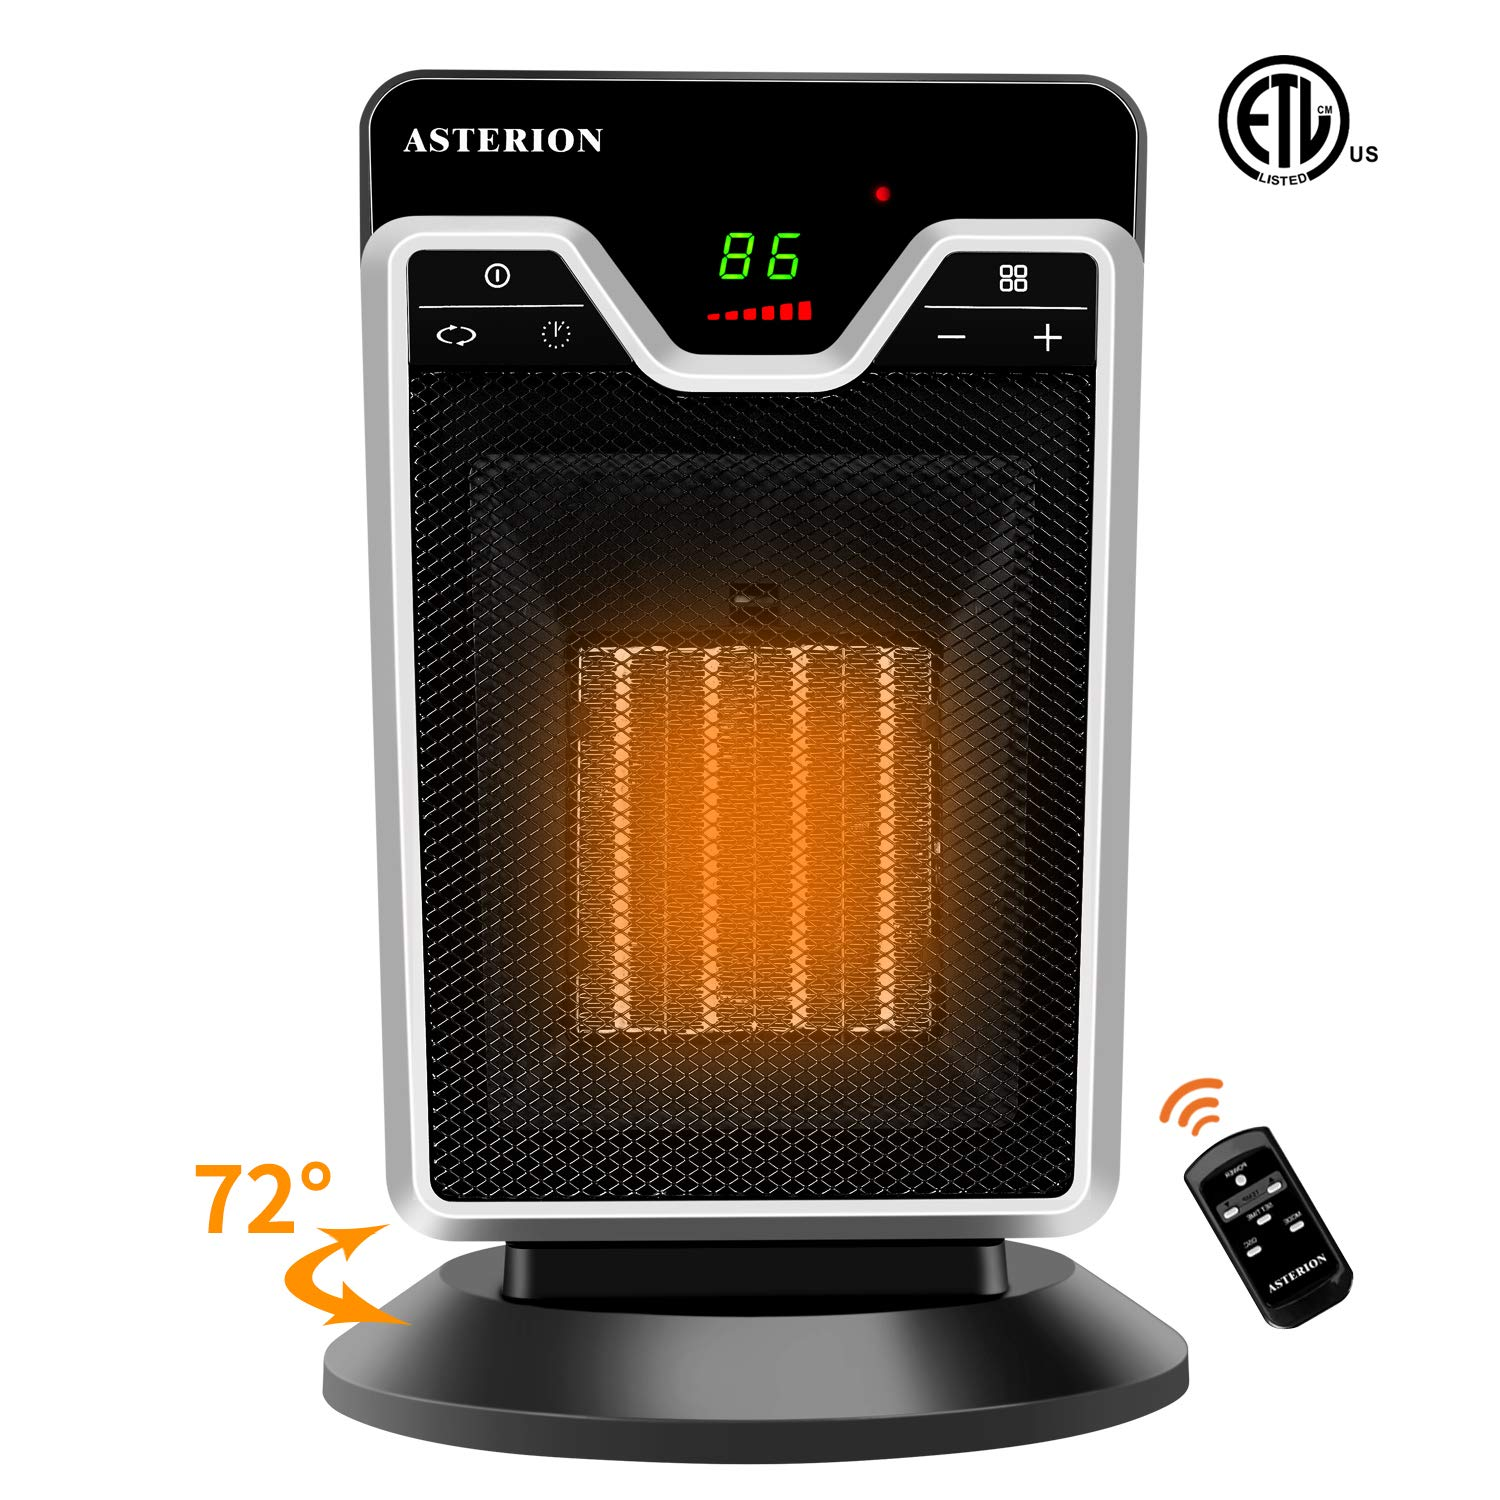 ASTERION Portable Heater with Adjustable Thermostat